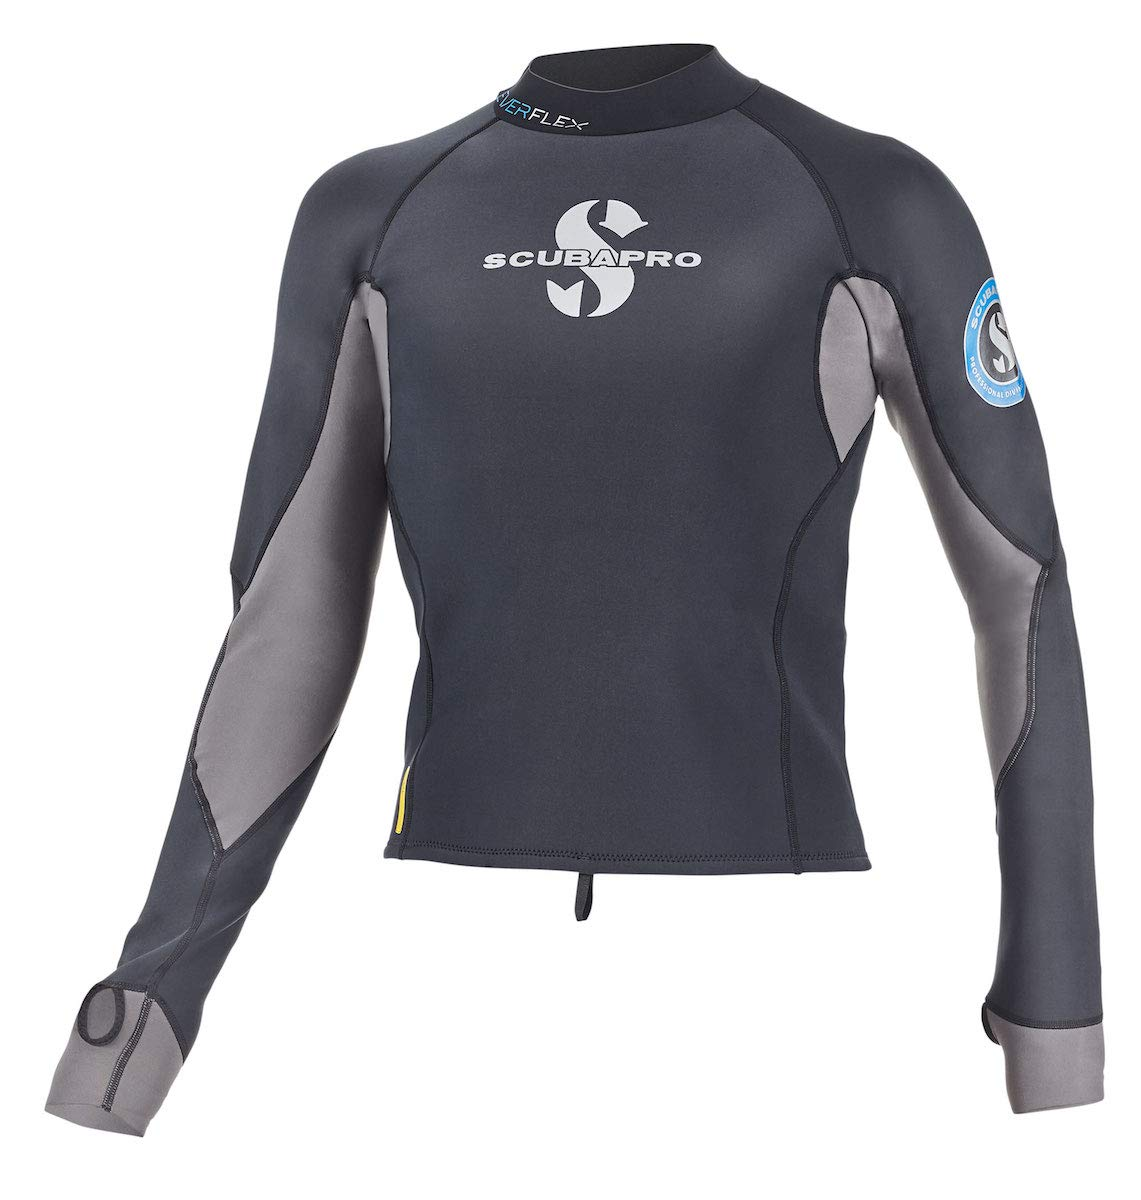 Scubapro Everflex 1.5mm Mens Long Sleeve Rash Guard Black, Size 3XL